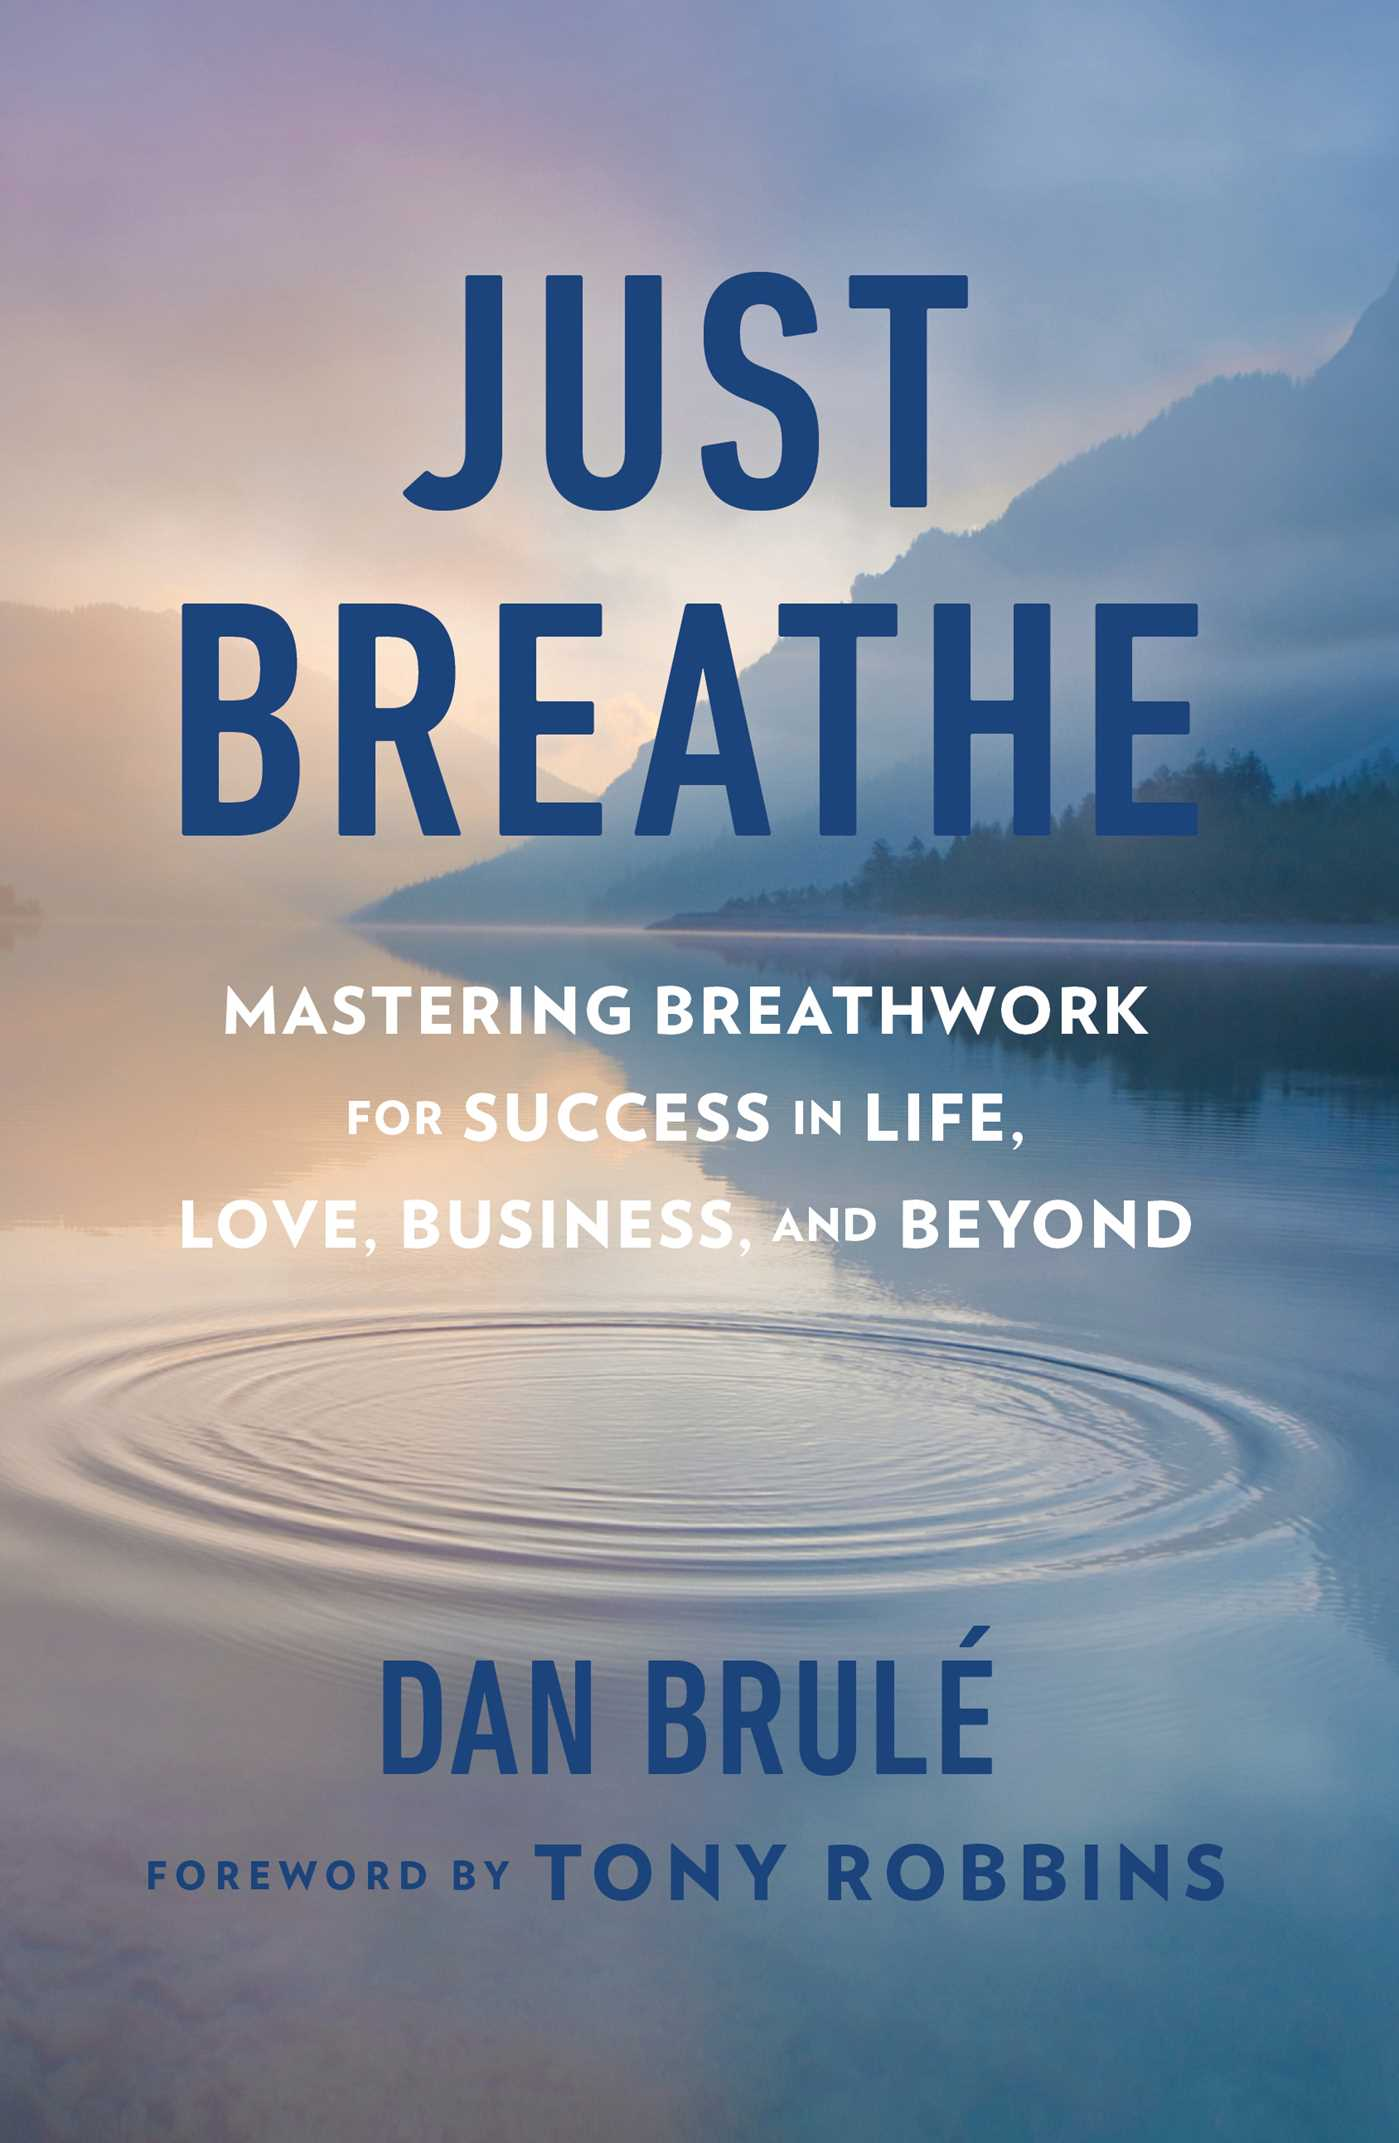 Just breathe 9781501134388 hr